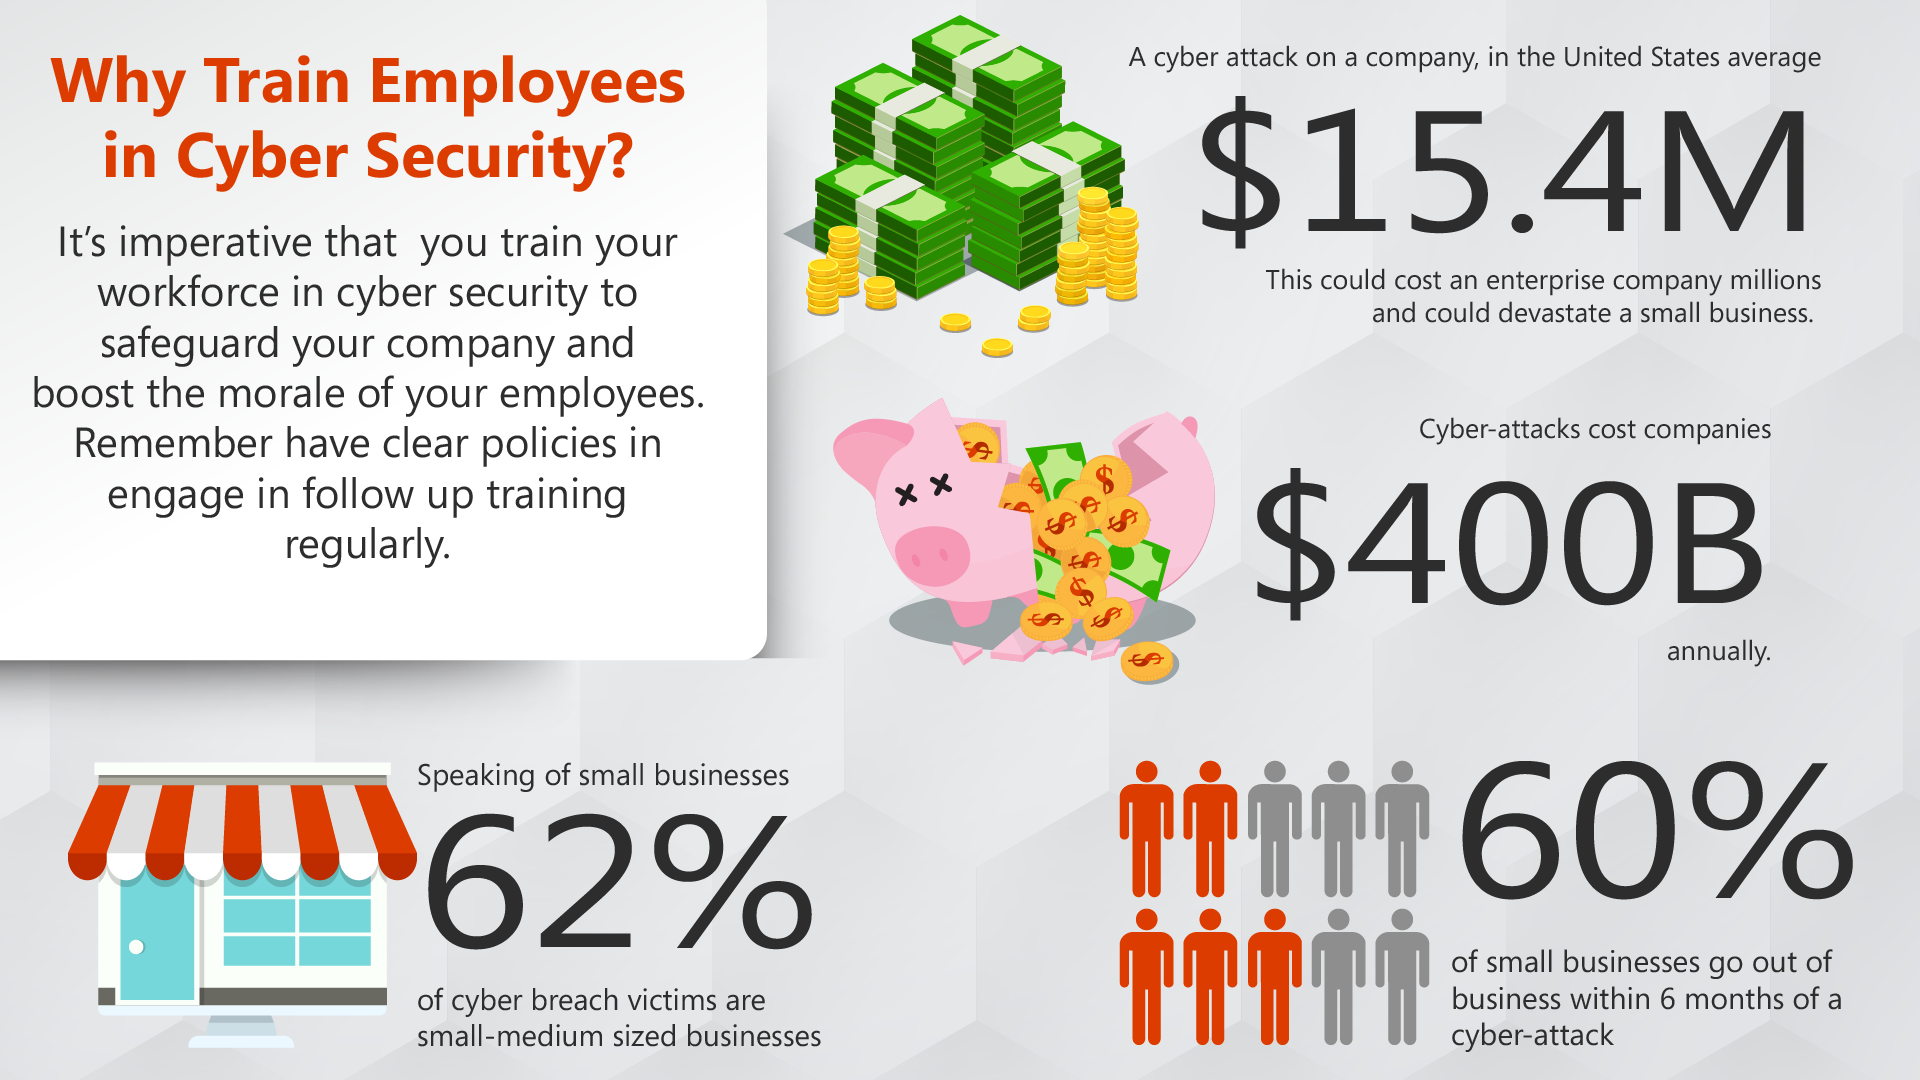 train employees in cyber security